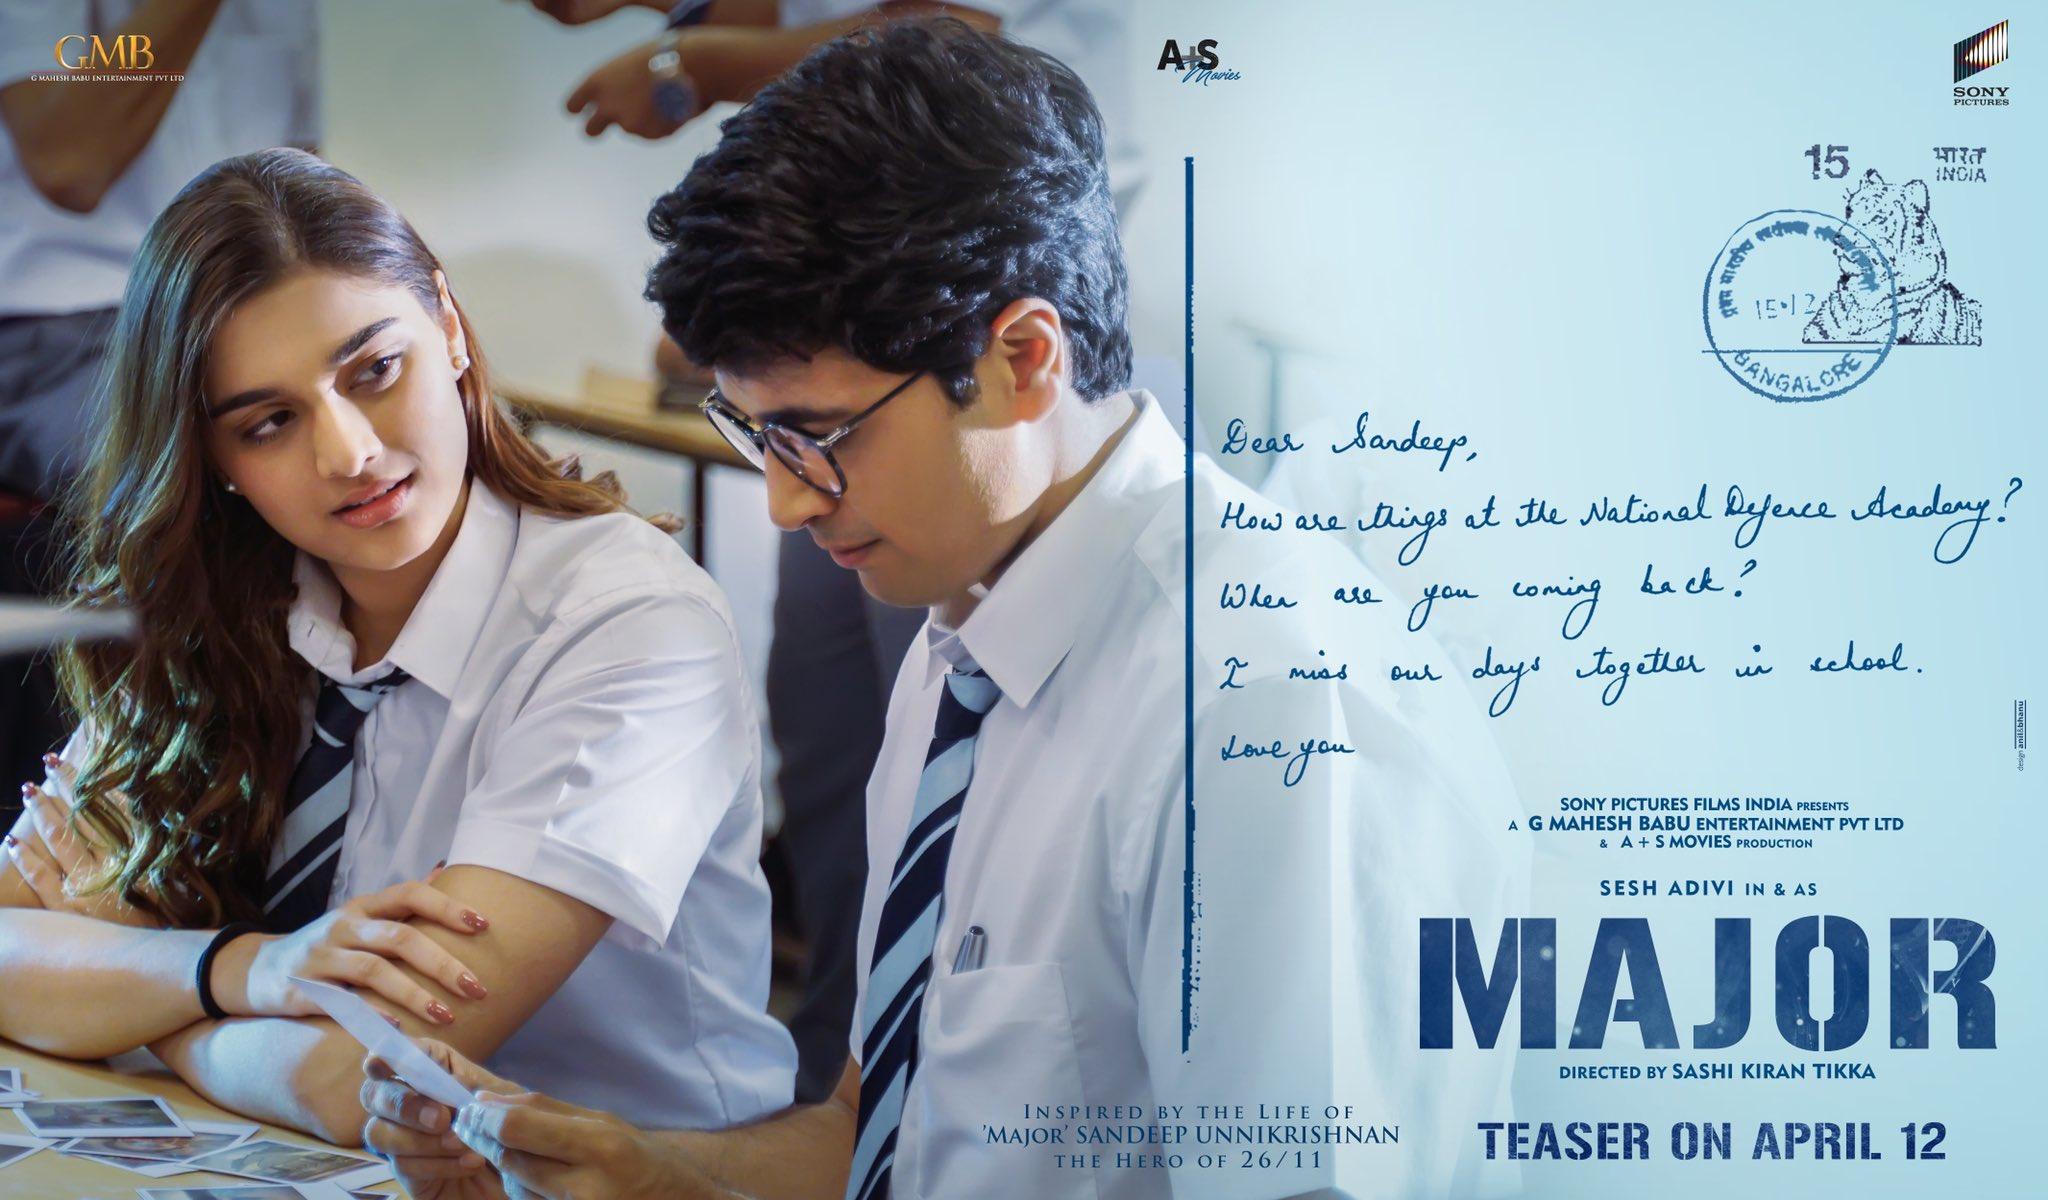 Saiee Manjrekar & Adivi Sesh @ Major Movie Teaser On April 12th Poster HD